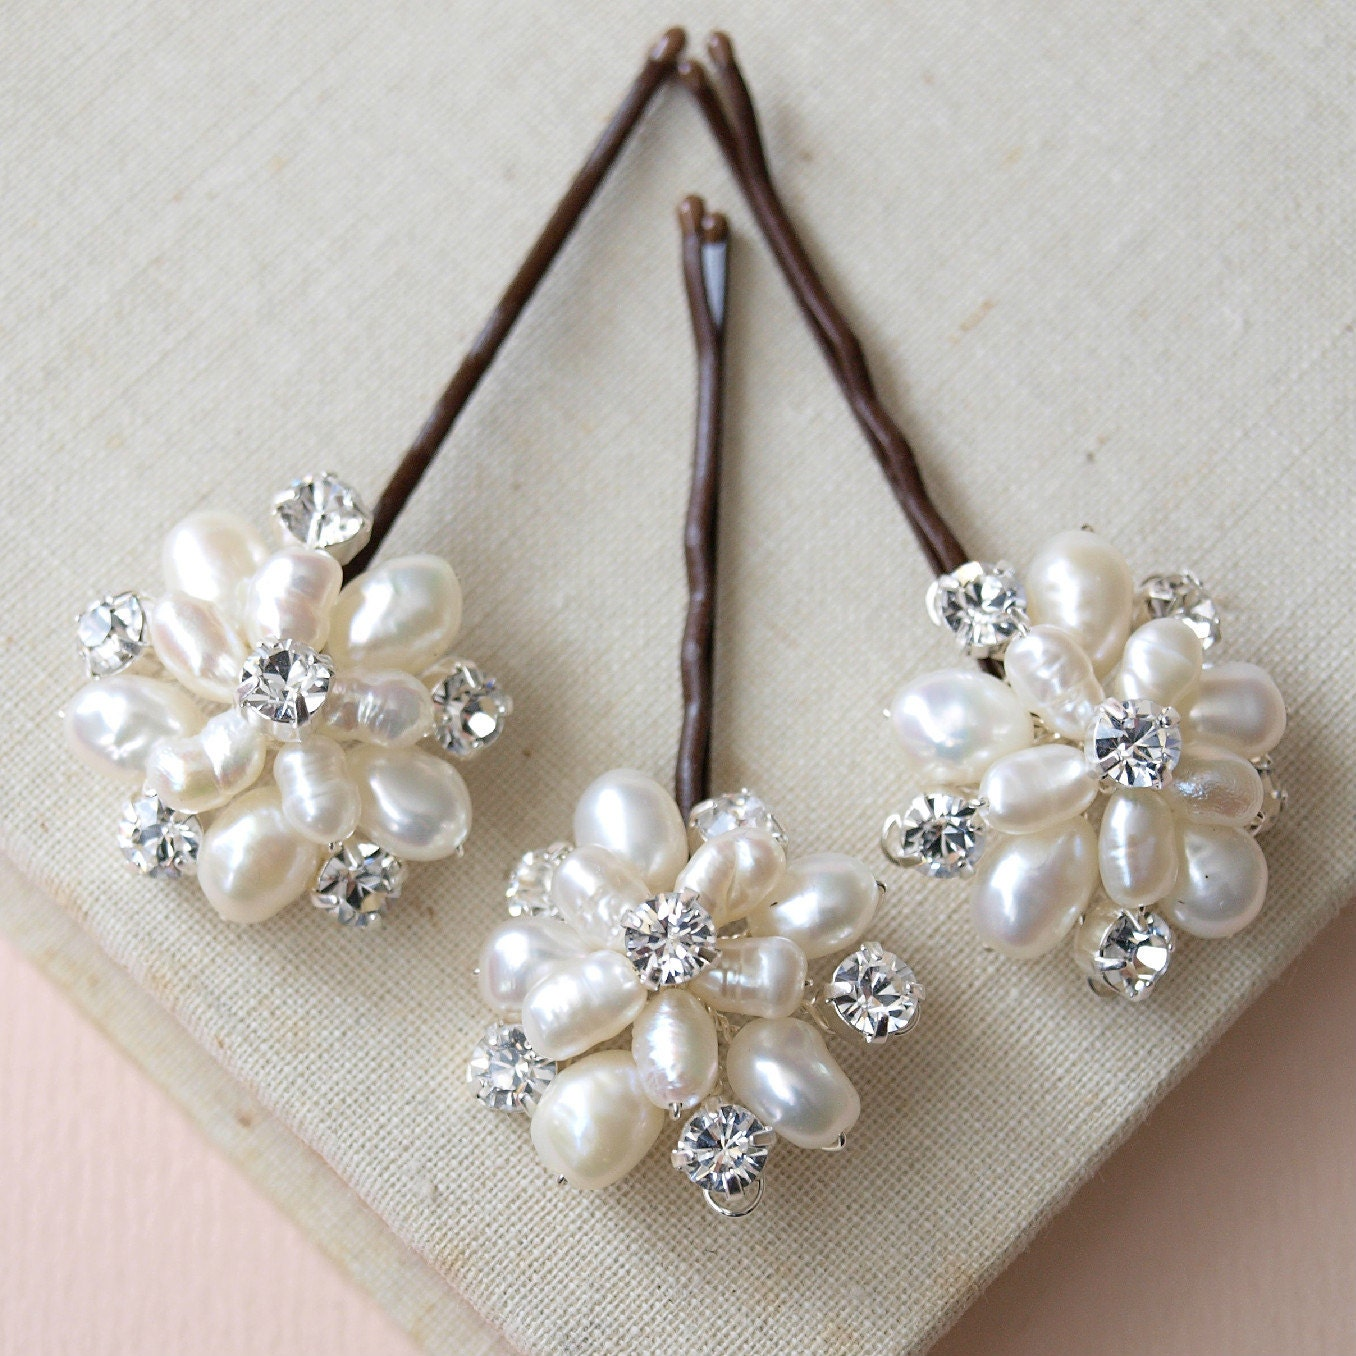 Beautiful flowers 2019 bridesmaid hair accessories flowers uk beautiful flowers 2019 bridesmaid hair accessories flowers uk beautiful flowers junglespirit Image collections